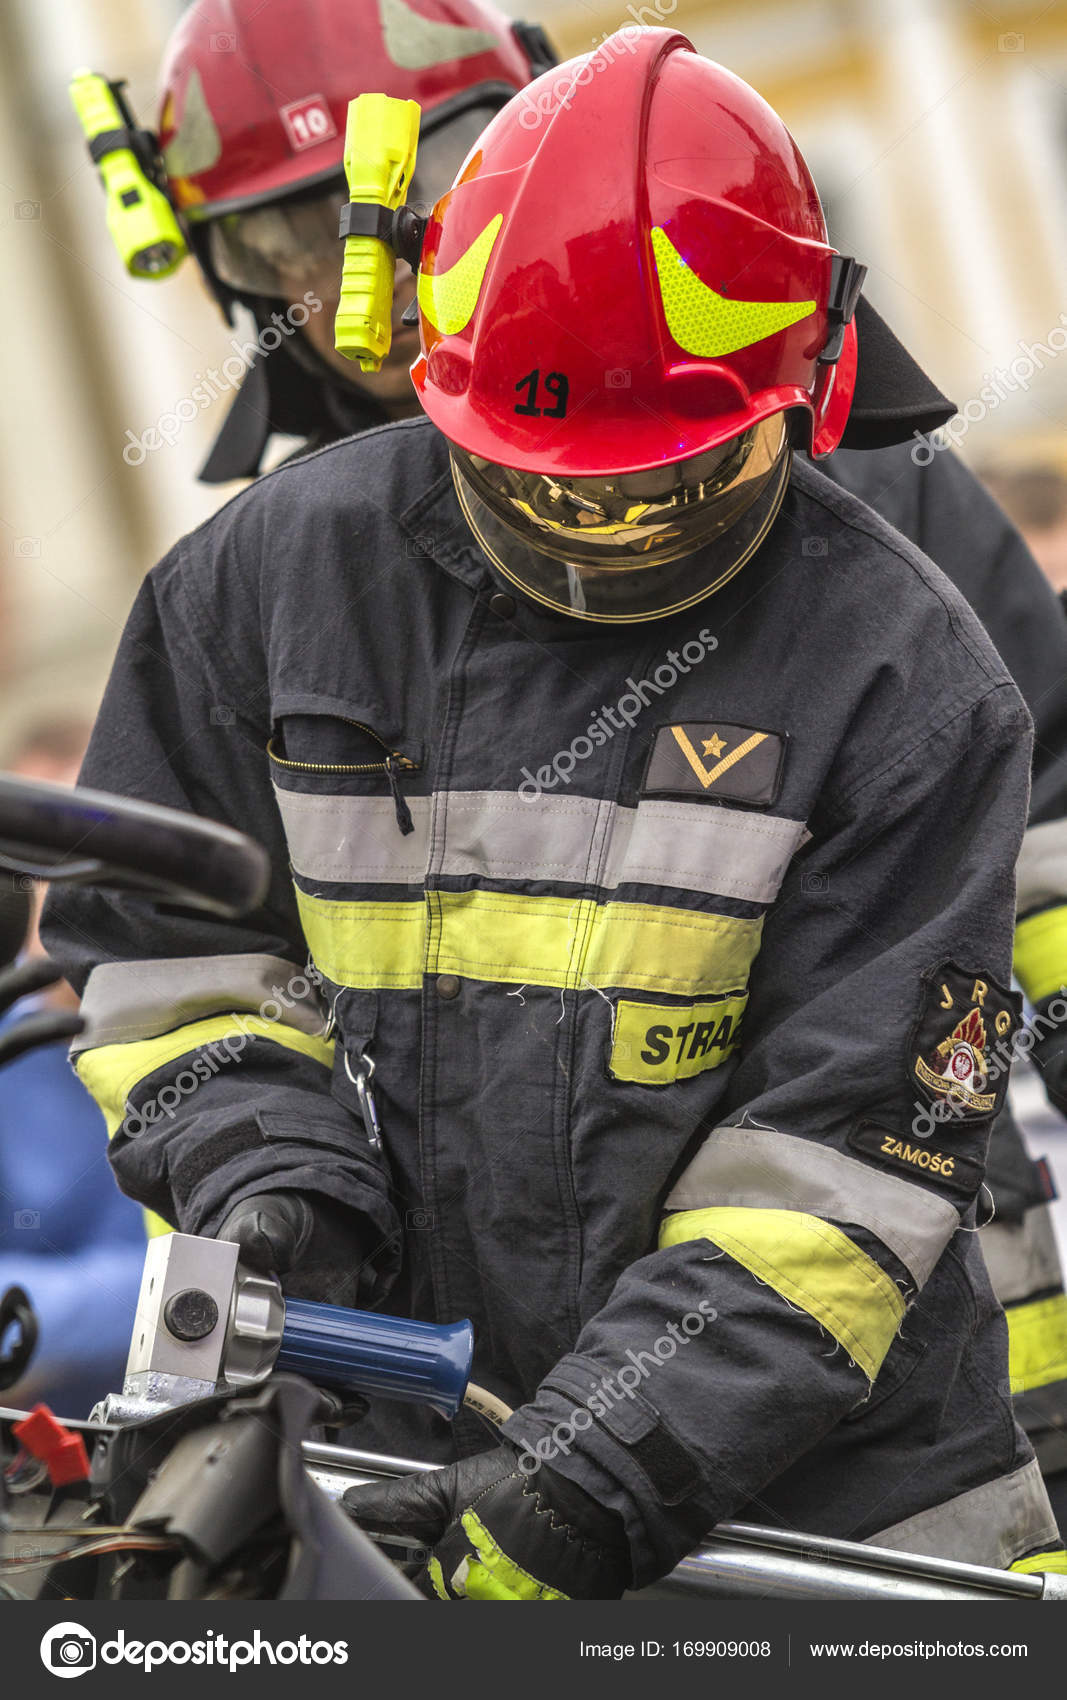 Firefighters working on an auto vehicle extrication – Stock